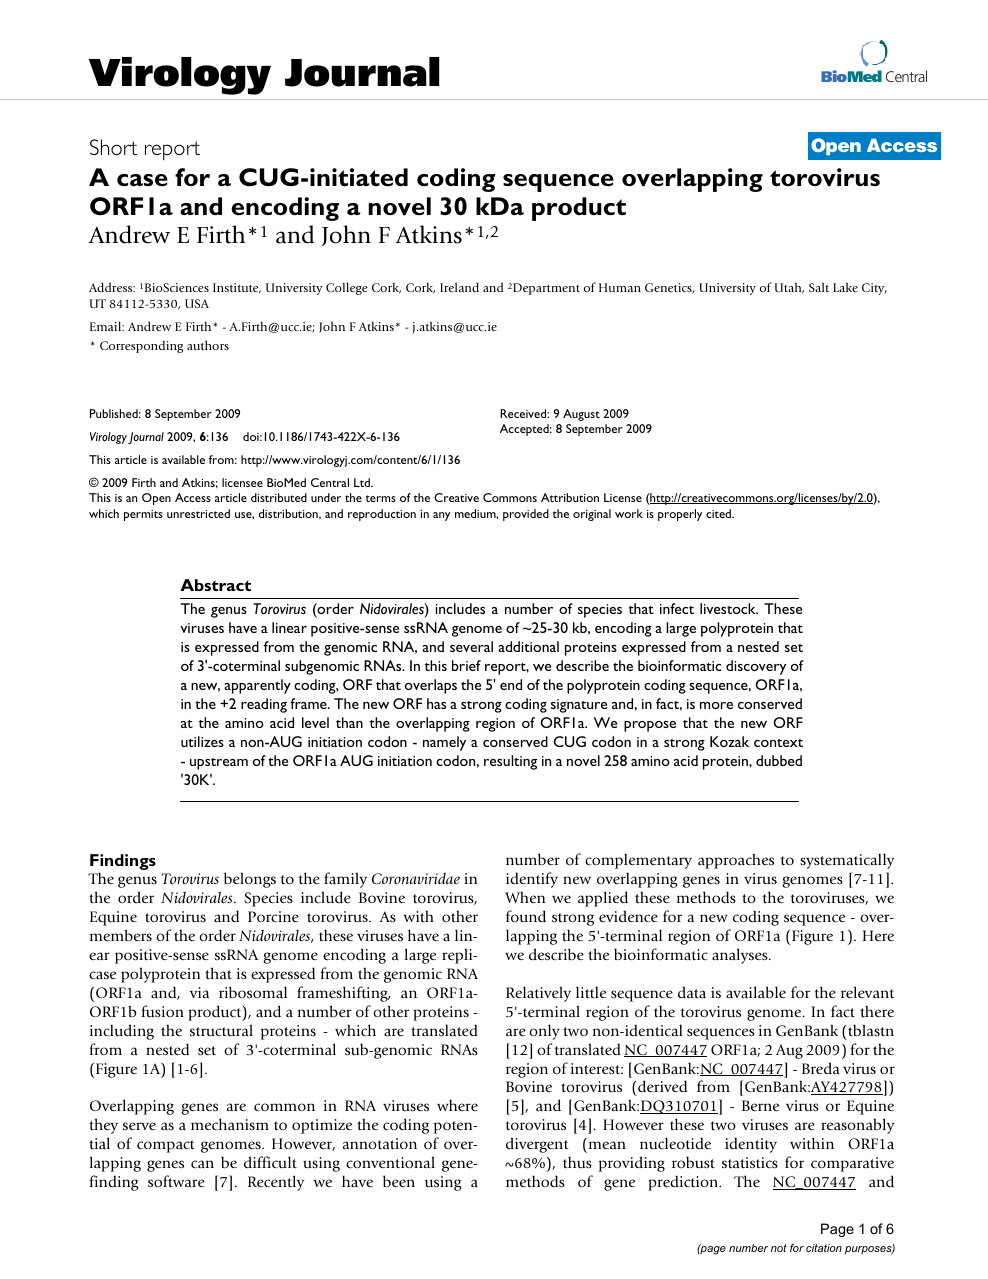 A case for a CUG-initiated coding sequence overlapping